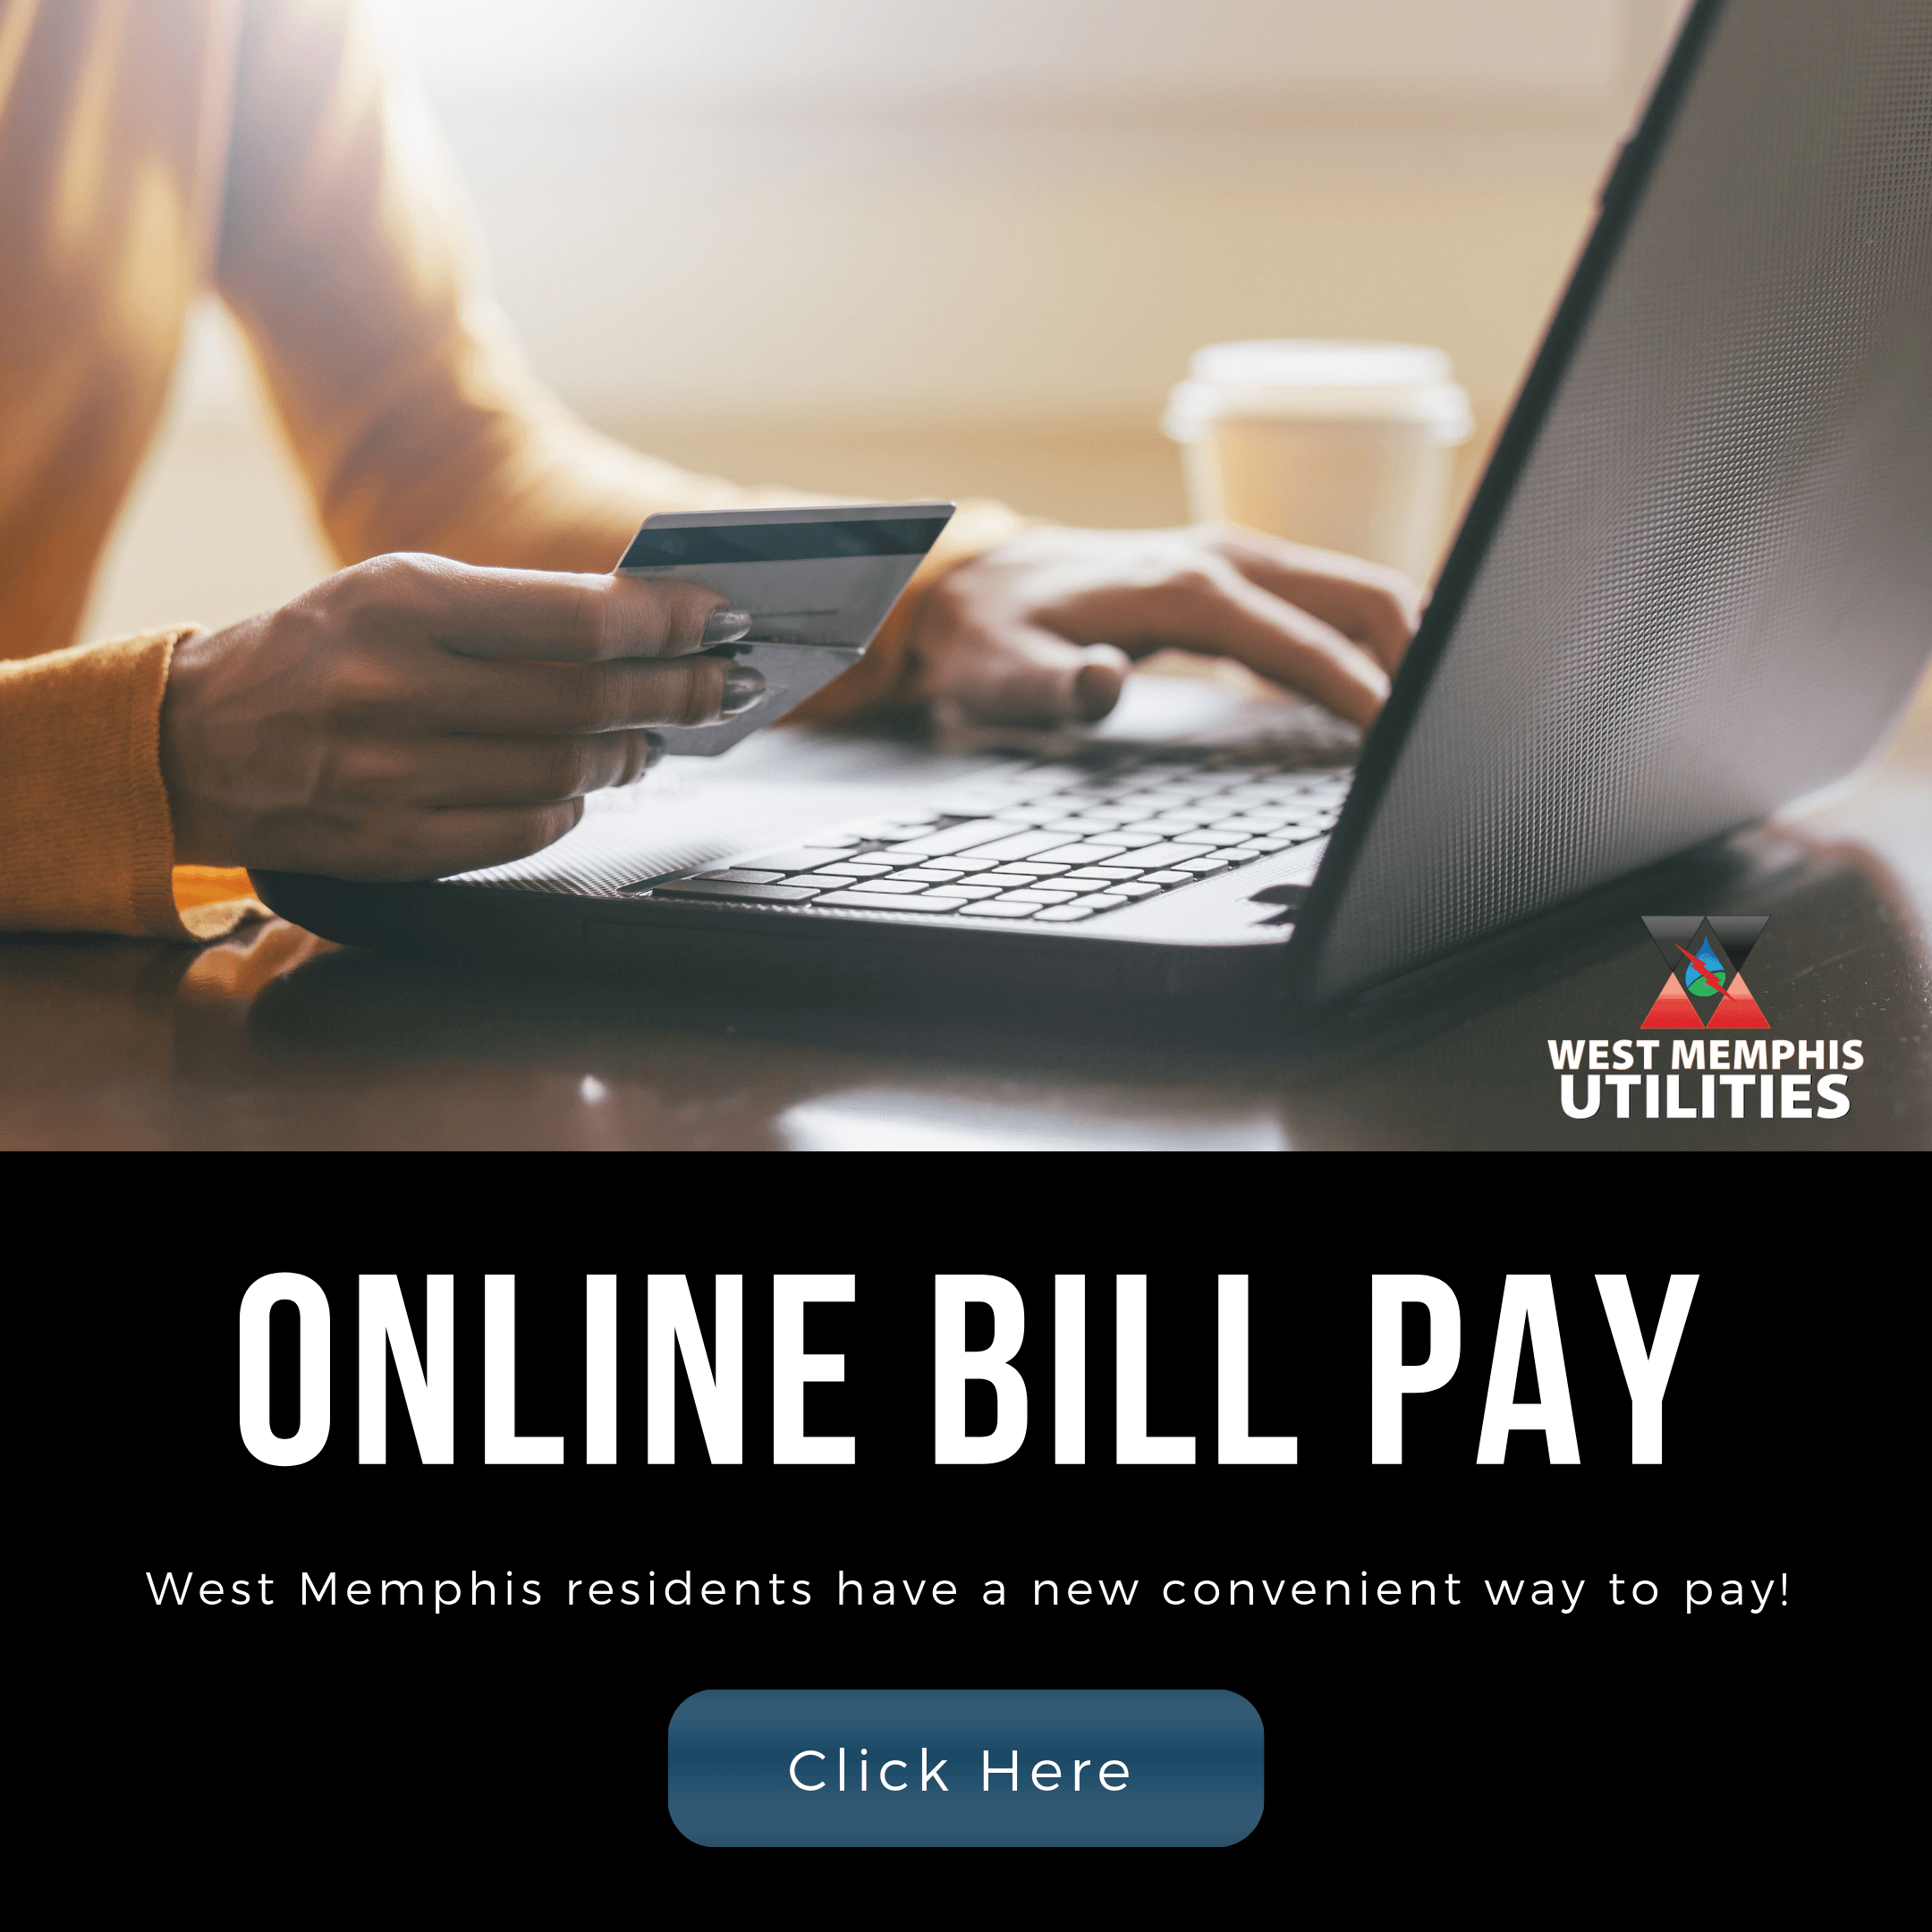 West Memphis Utilities Online bill pay